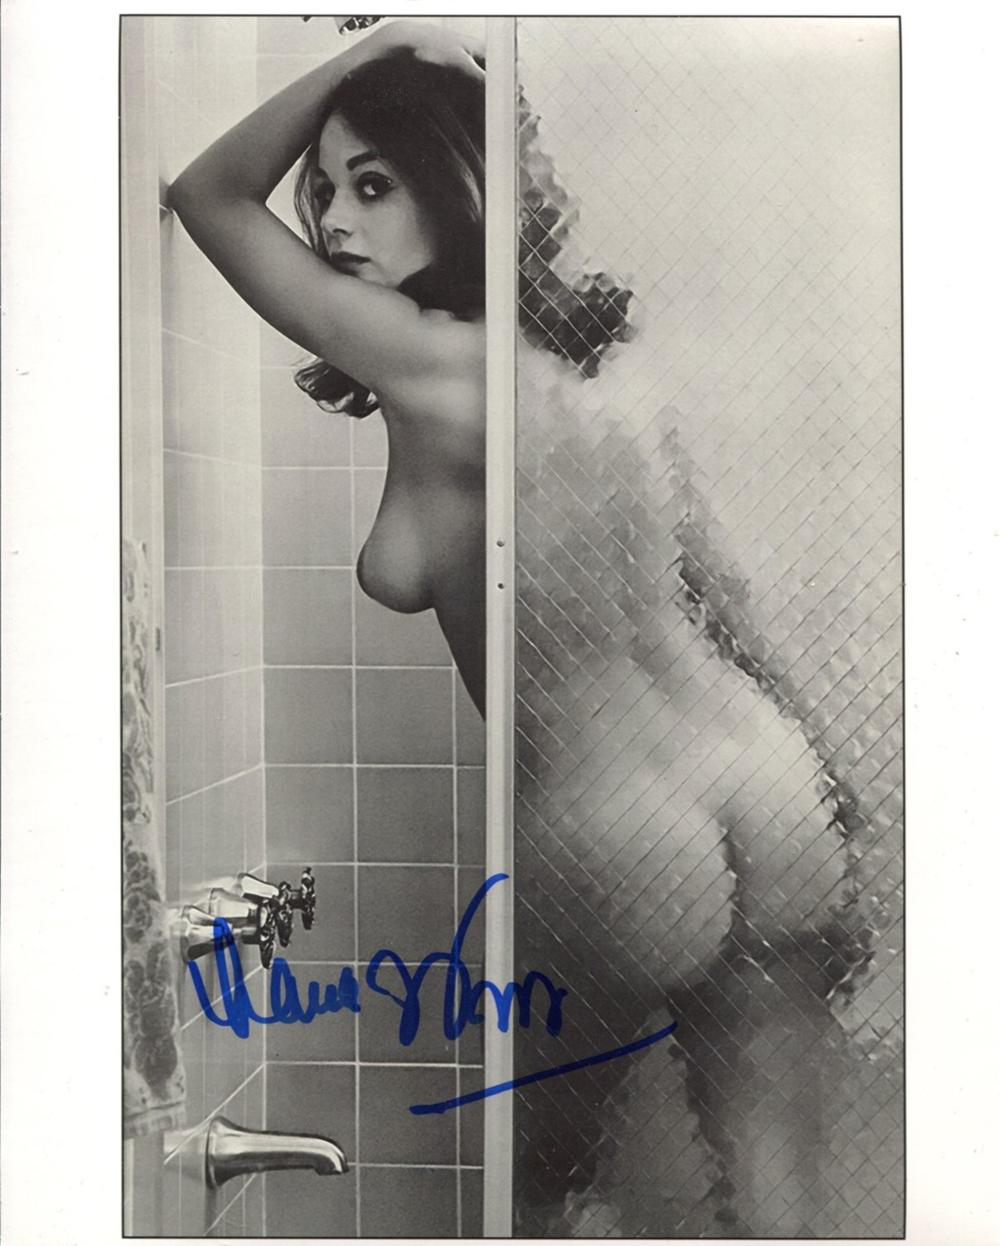 007 Bond girl Lana Wood signed photo, desirable image of her naked in the shower. Good condition.